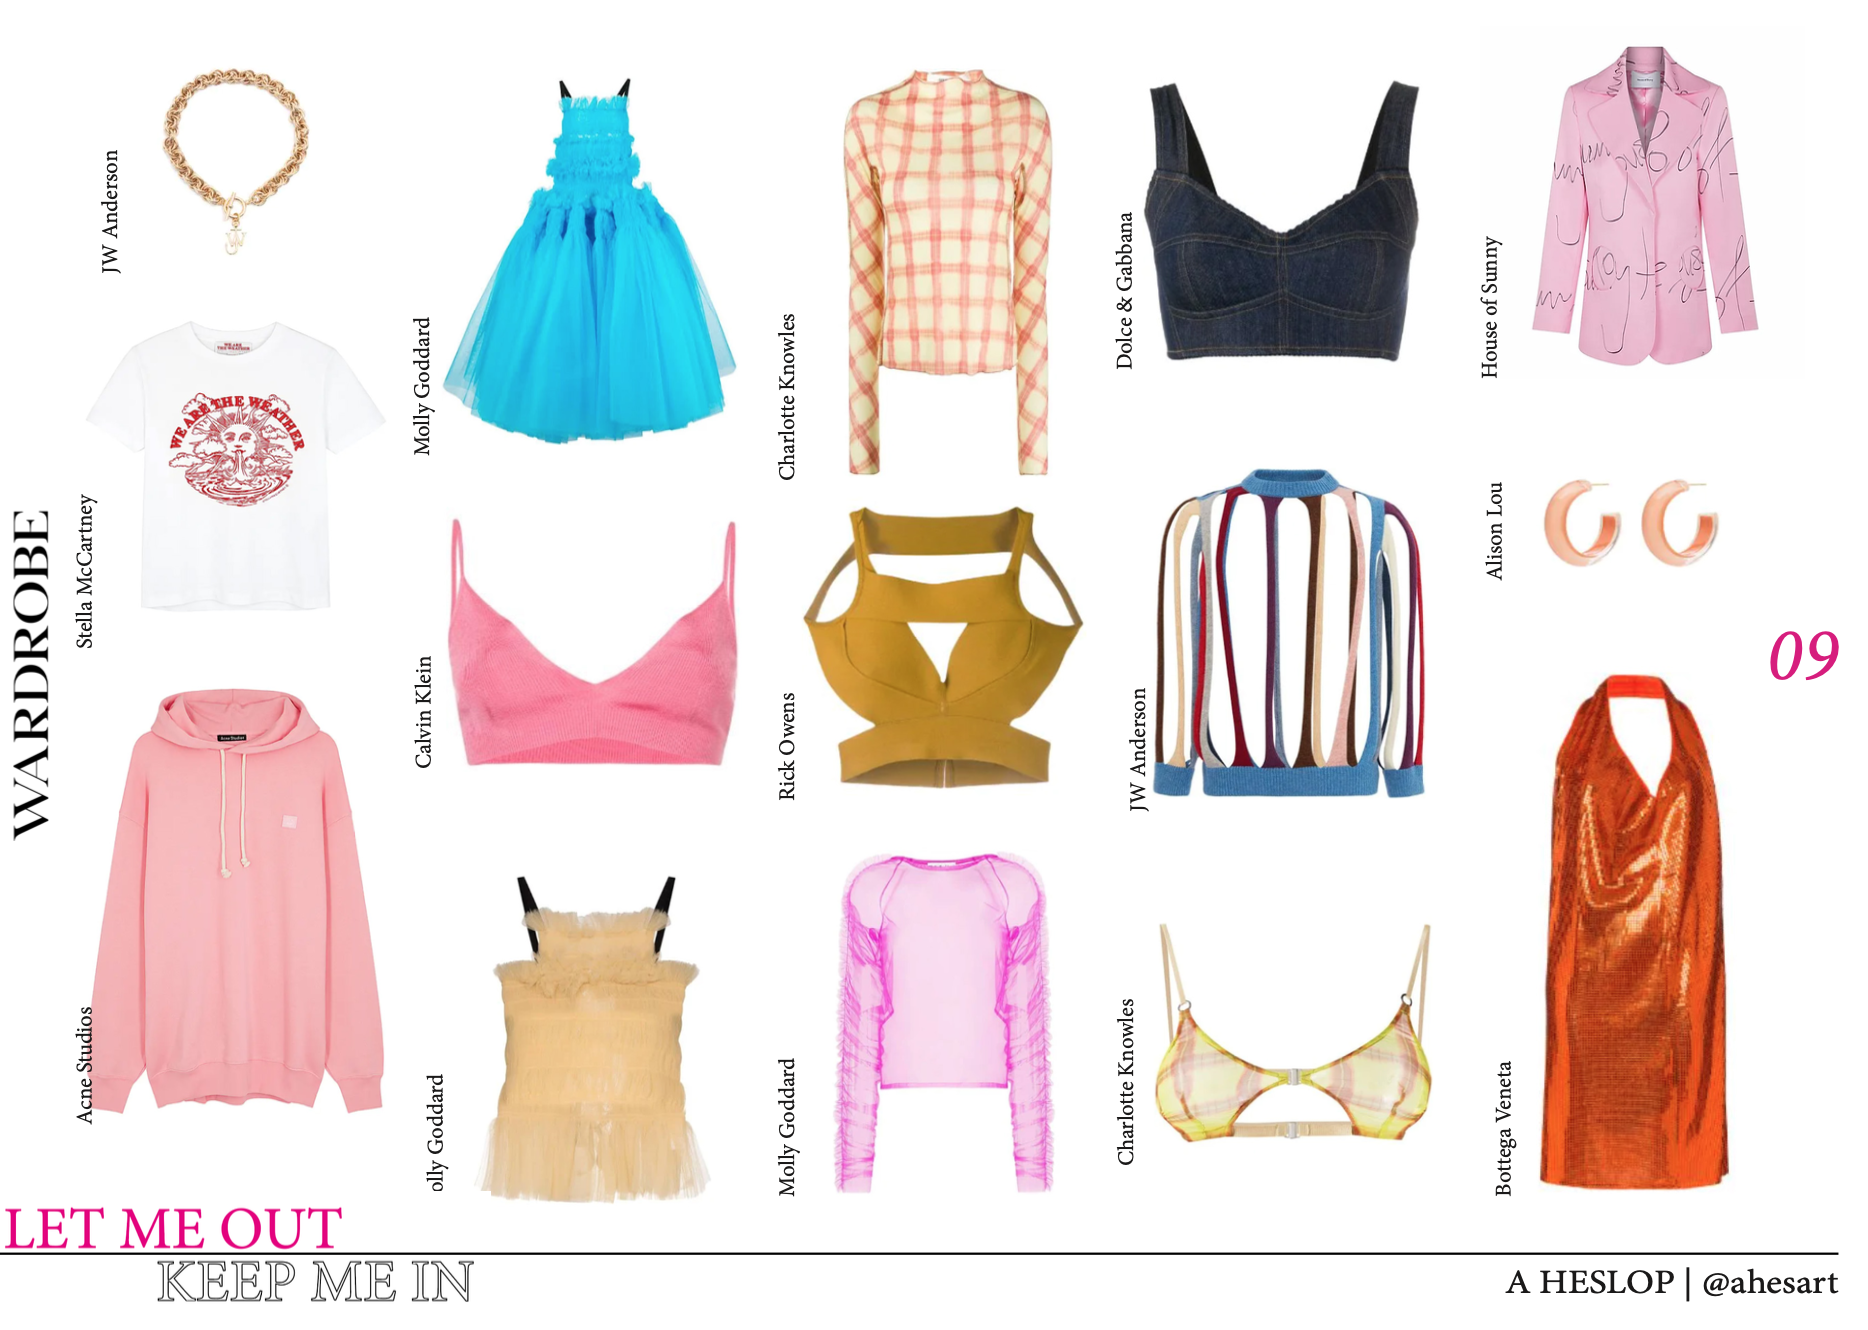 A collection of clothing inspirations Alisia used during her photoshoot